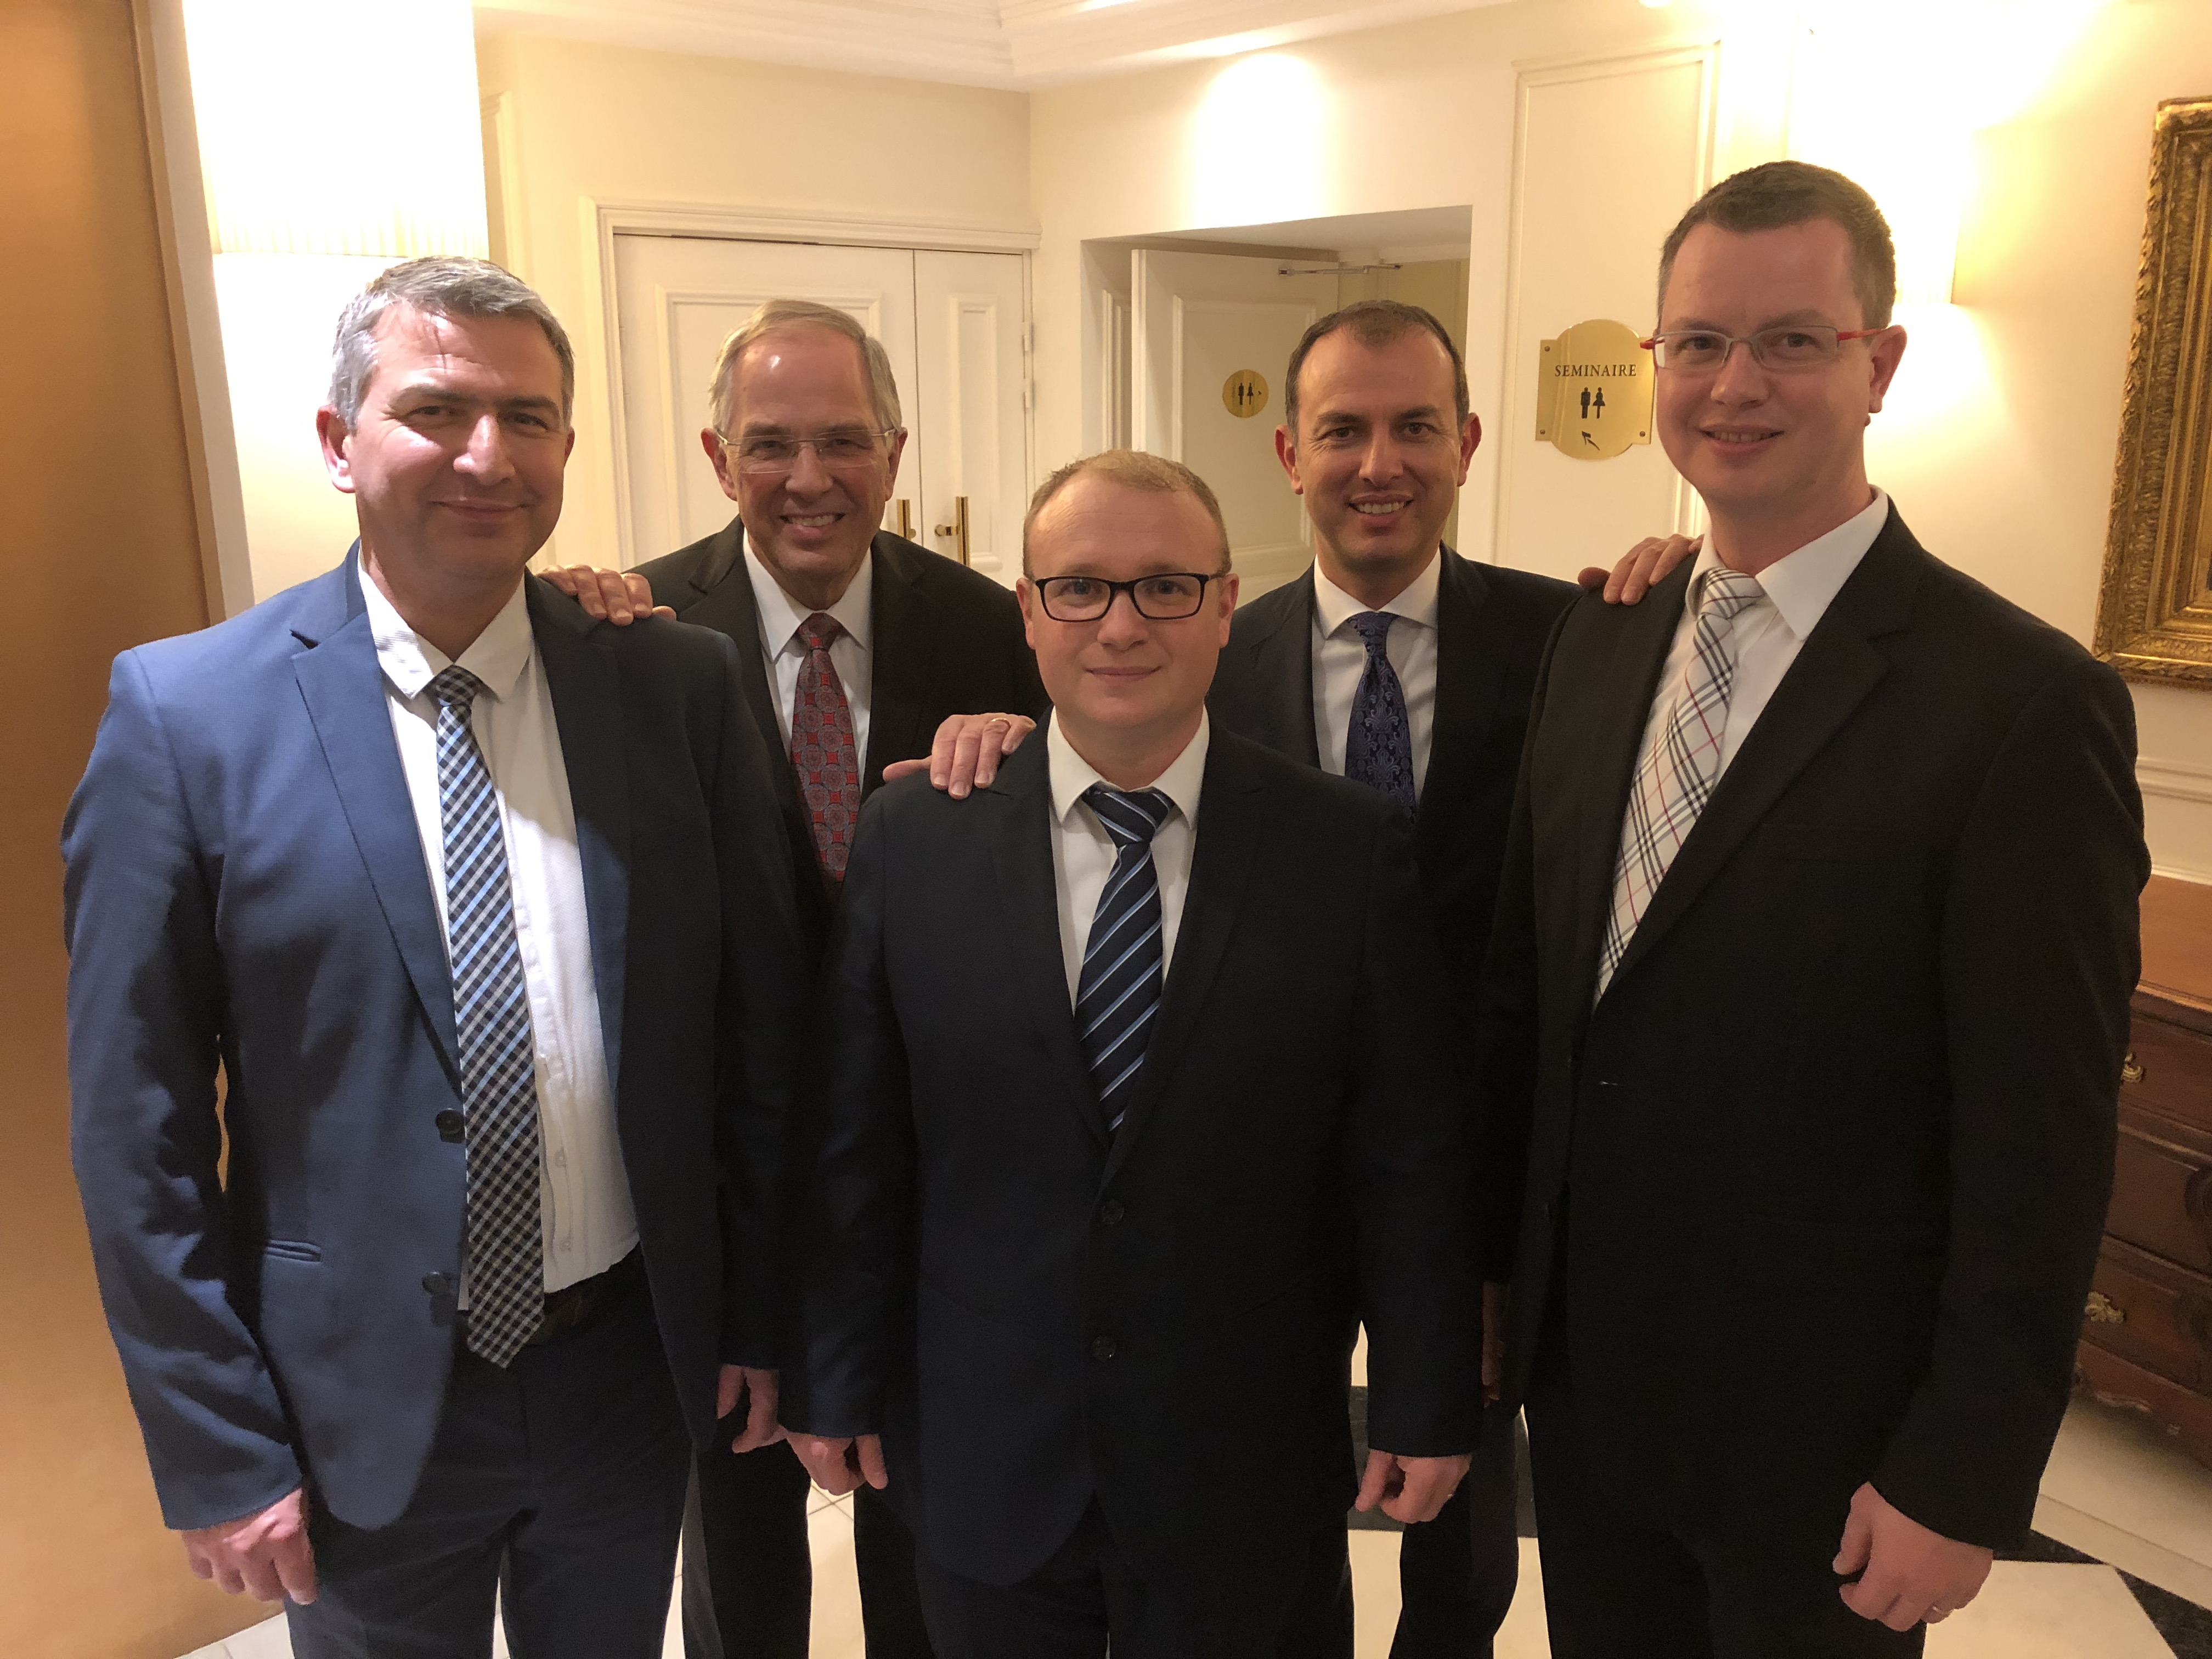 Elder Neil L. Andersen and Elder Matthieu Bennasar (back row) with the current presidency of the Bordeaux France Stake (front row, from left): President Yannick C. J. Leroy, first counselor; President Julien J. P. Raveneau, stake president; and President Aymeric E. R. Faucher, second counselor.